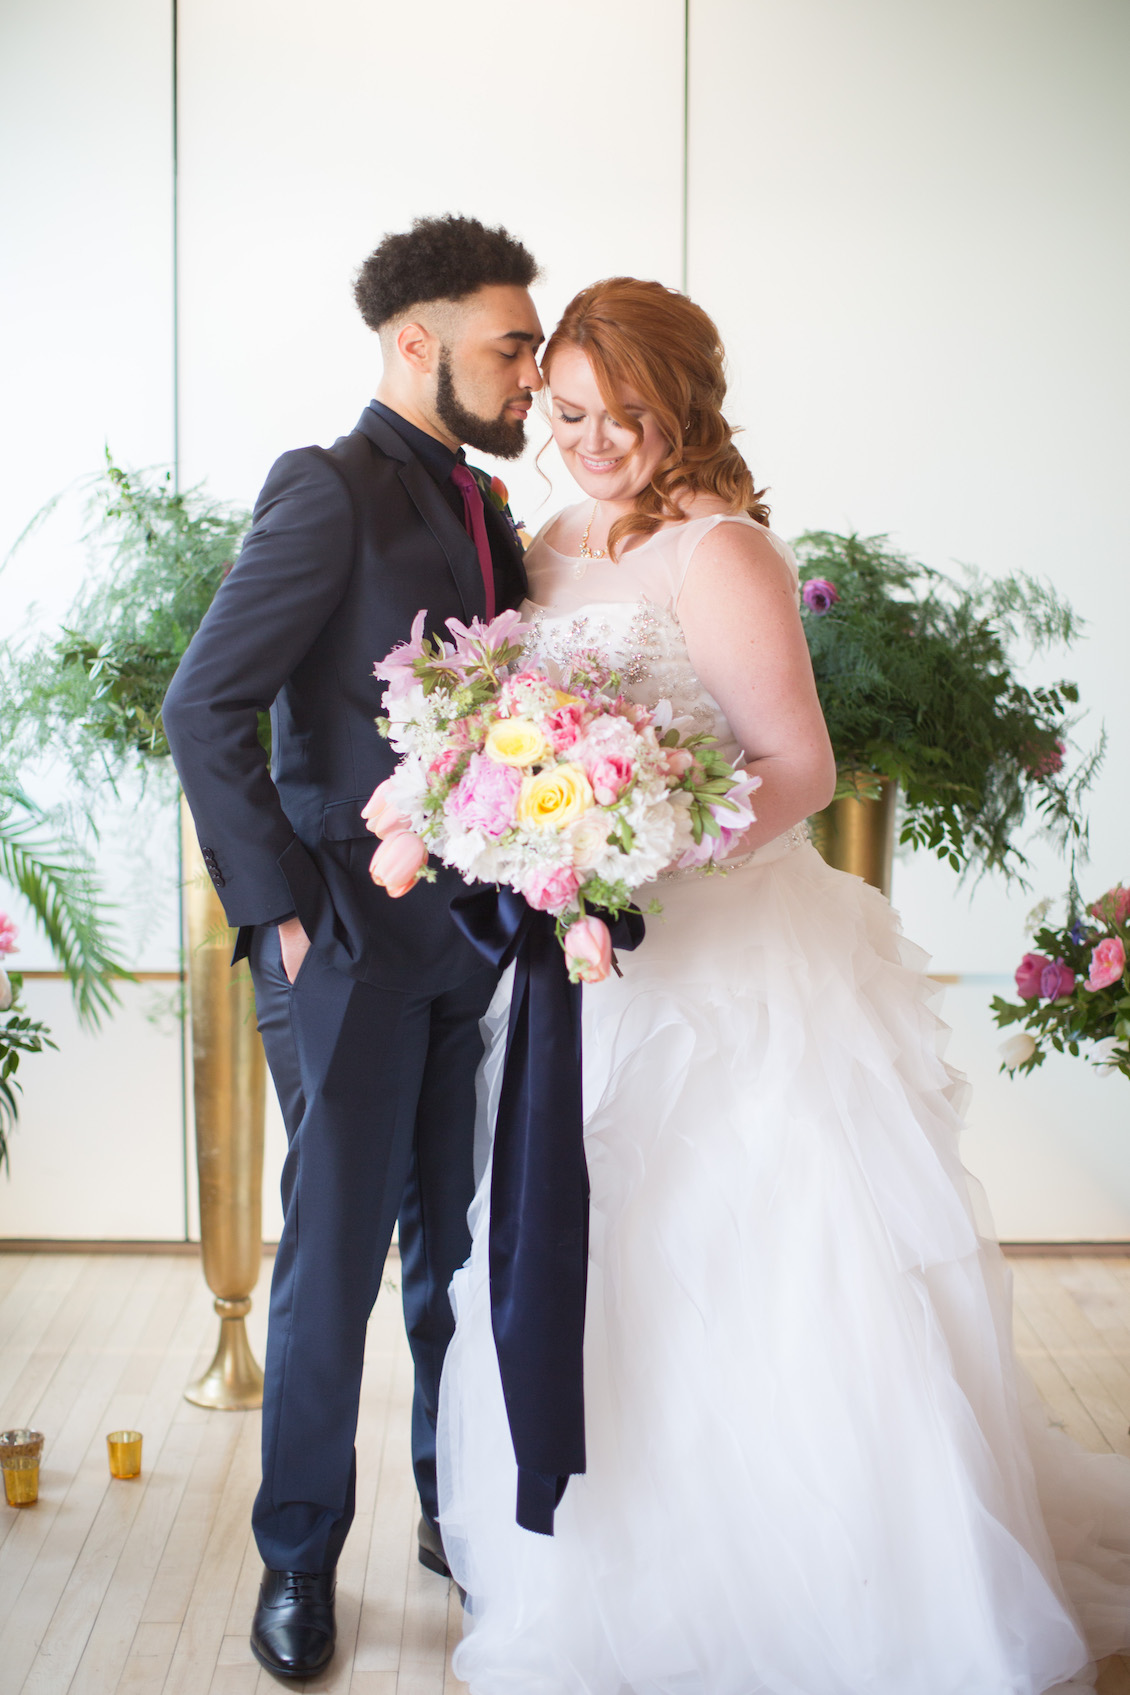 Gorgeous Urban Glam Meets Modern City Wedding - Styled Shoot / Florals by EightTreeStreet / Photography by Amy Nicole